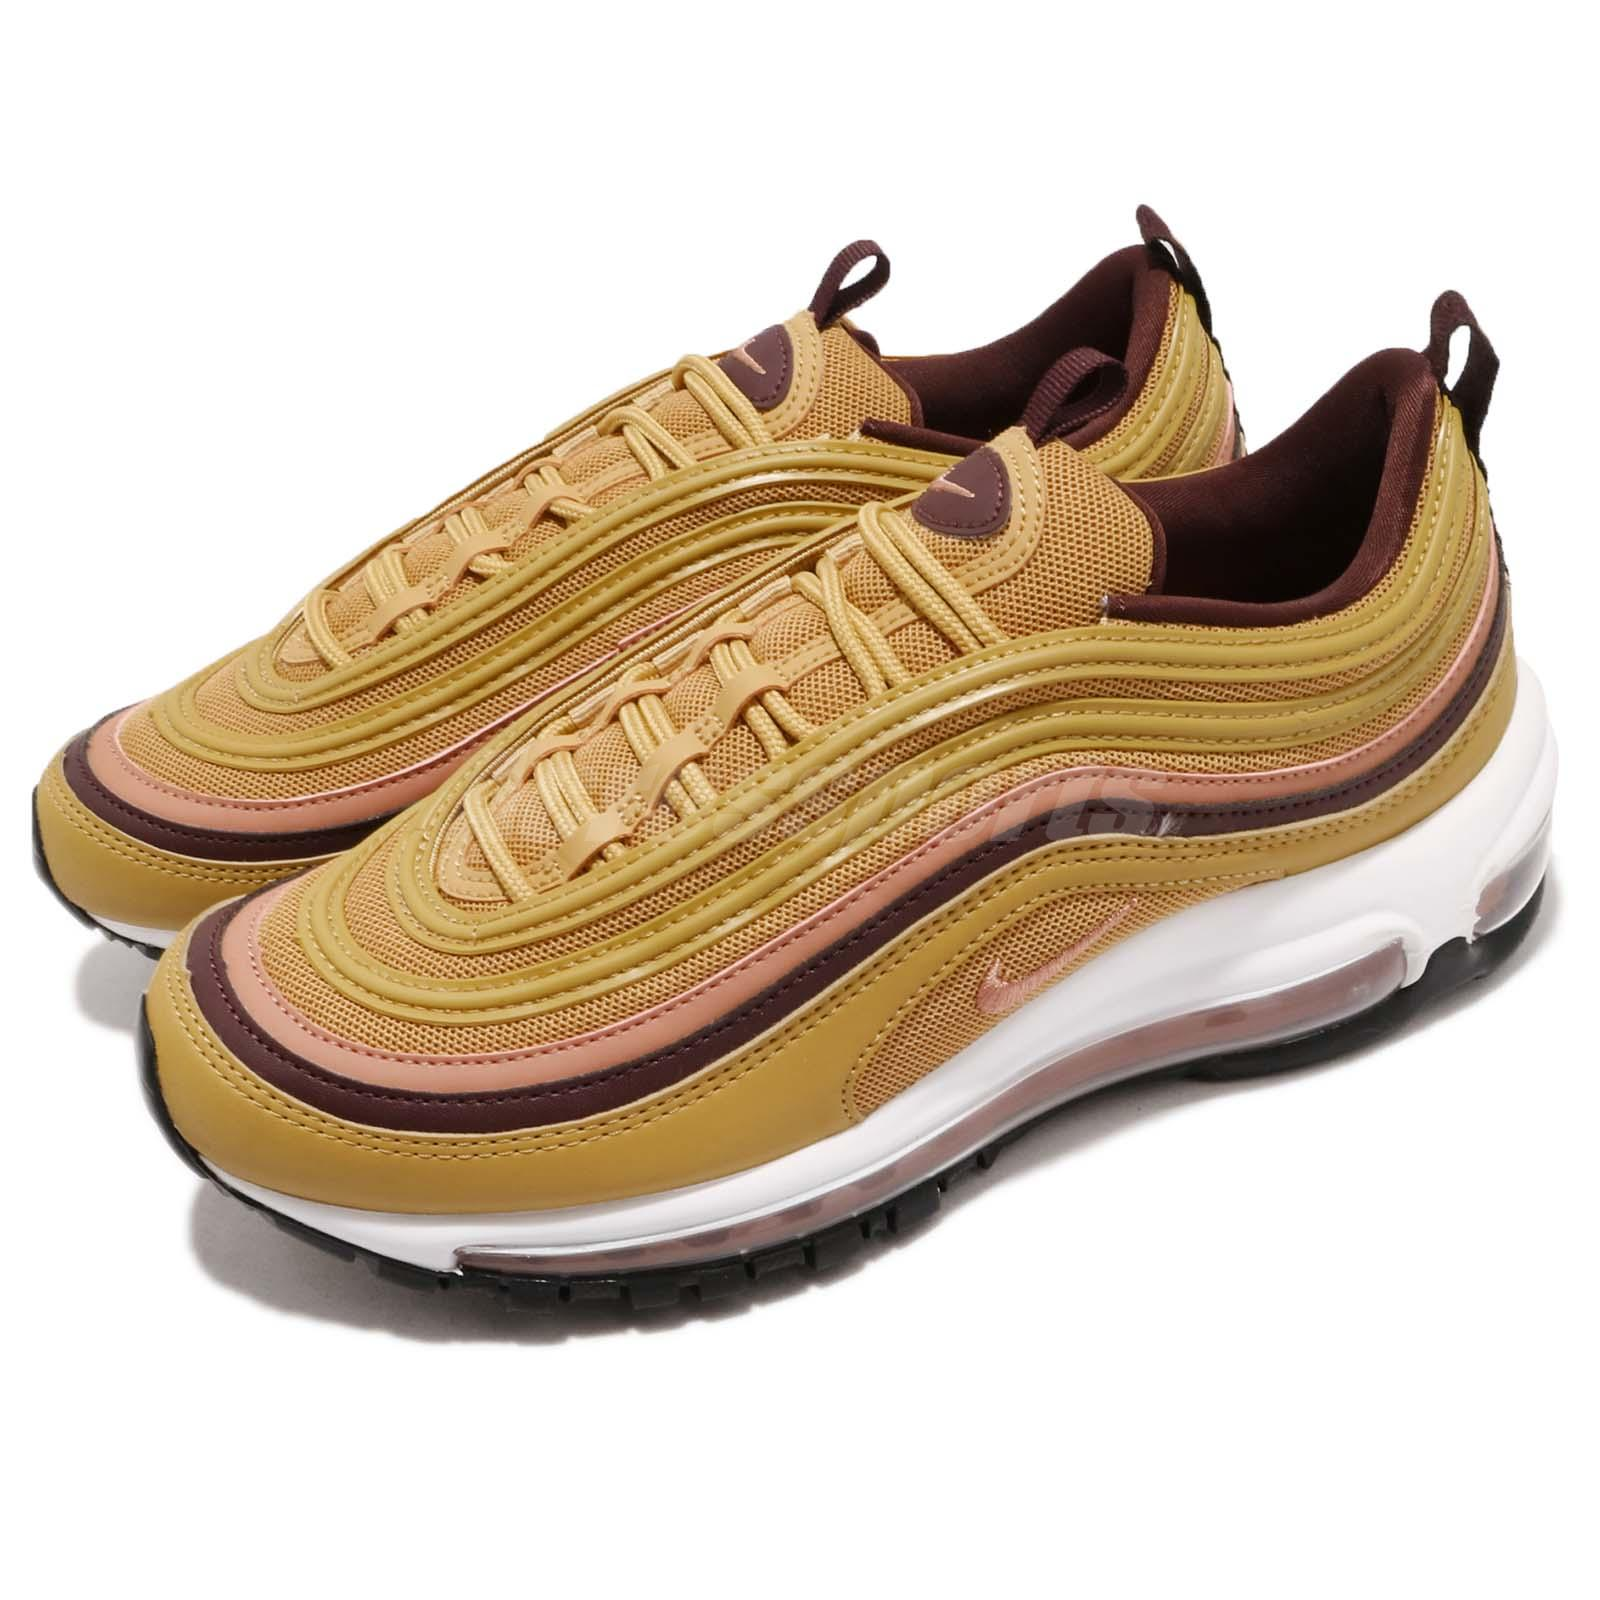 new style c20fd 12808 Details about Nike Wmns Air Max 97 Mustard Wheat Gold Womens Running Shoes  Sneakers 921733-700